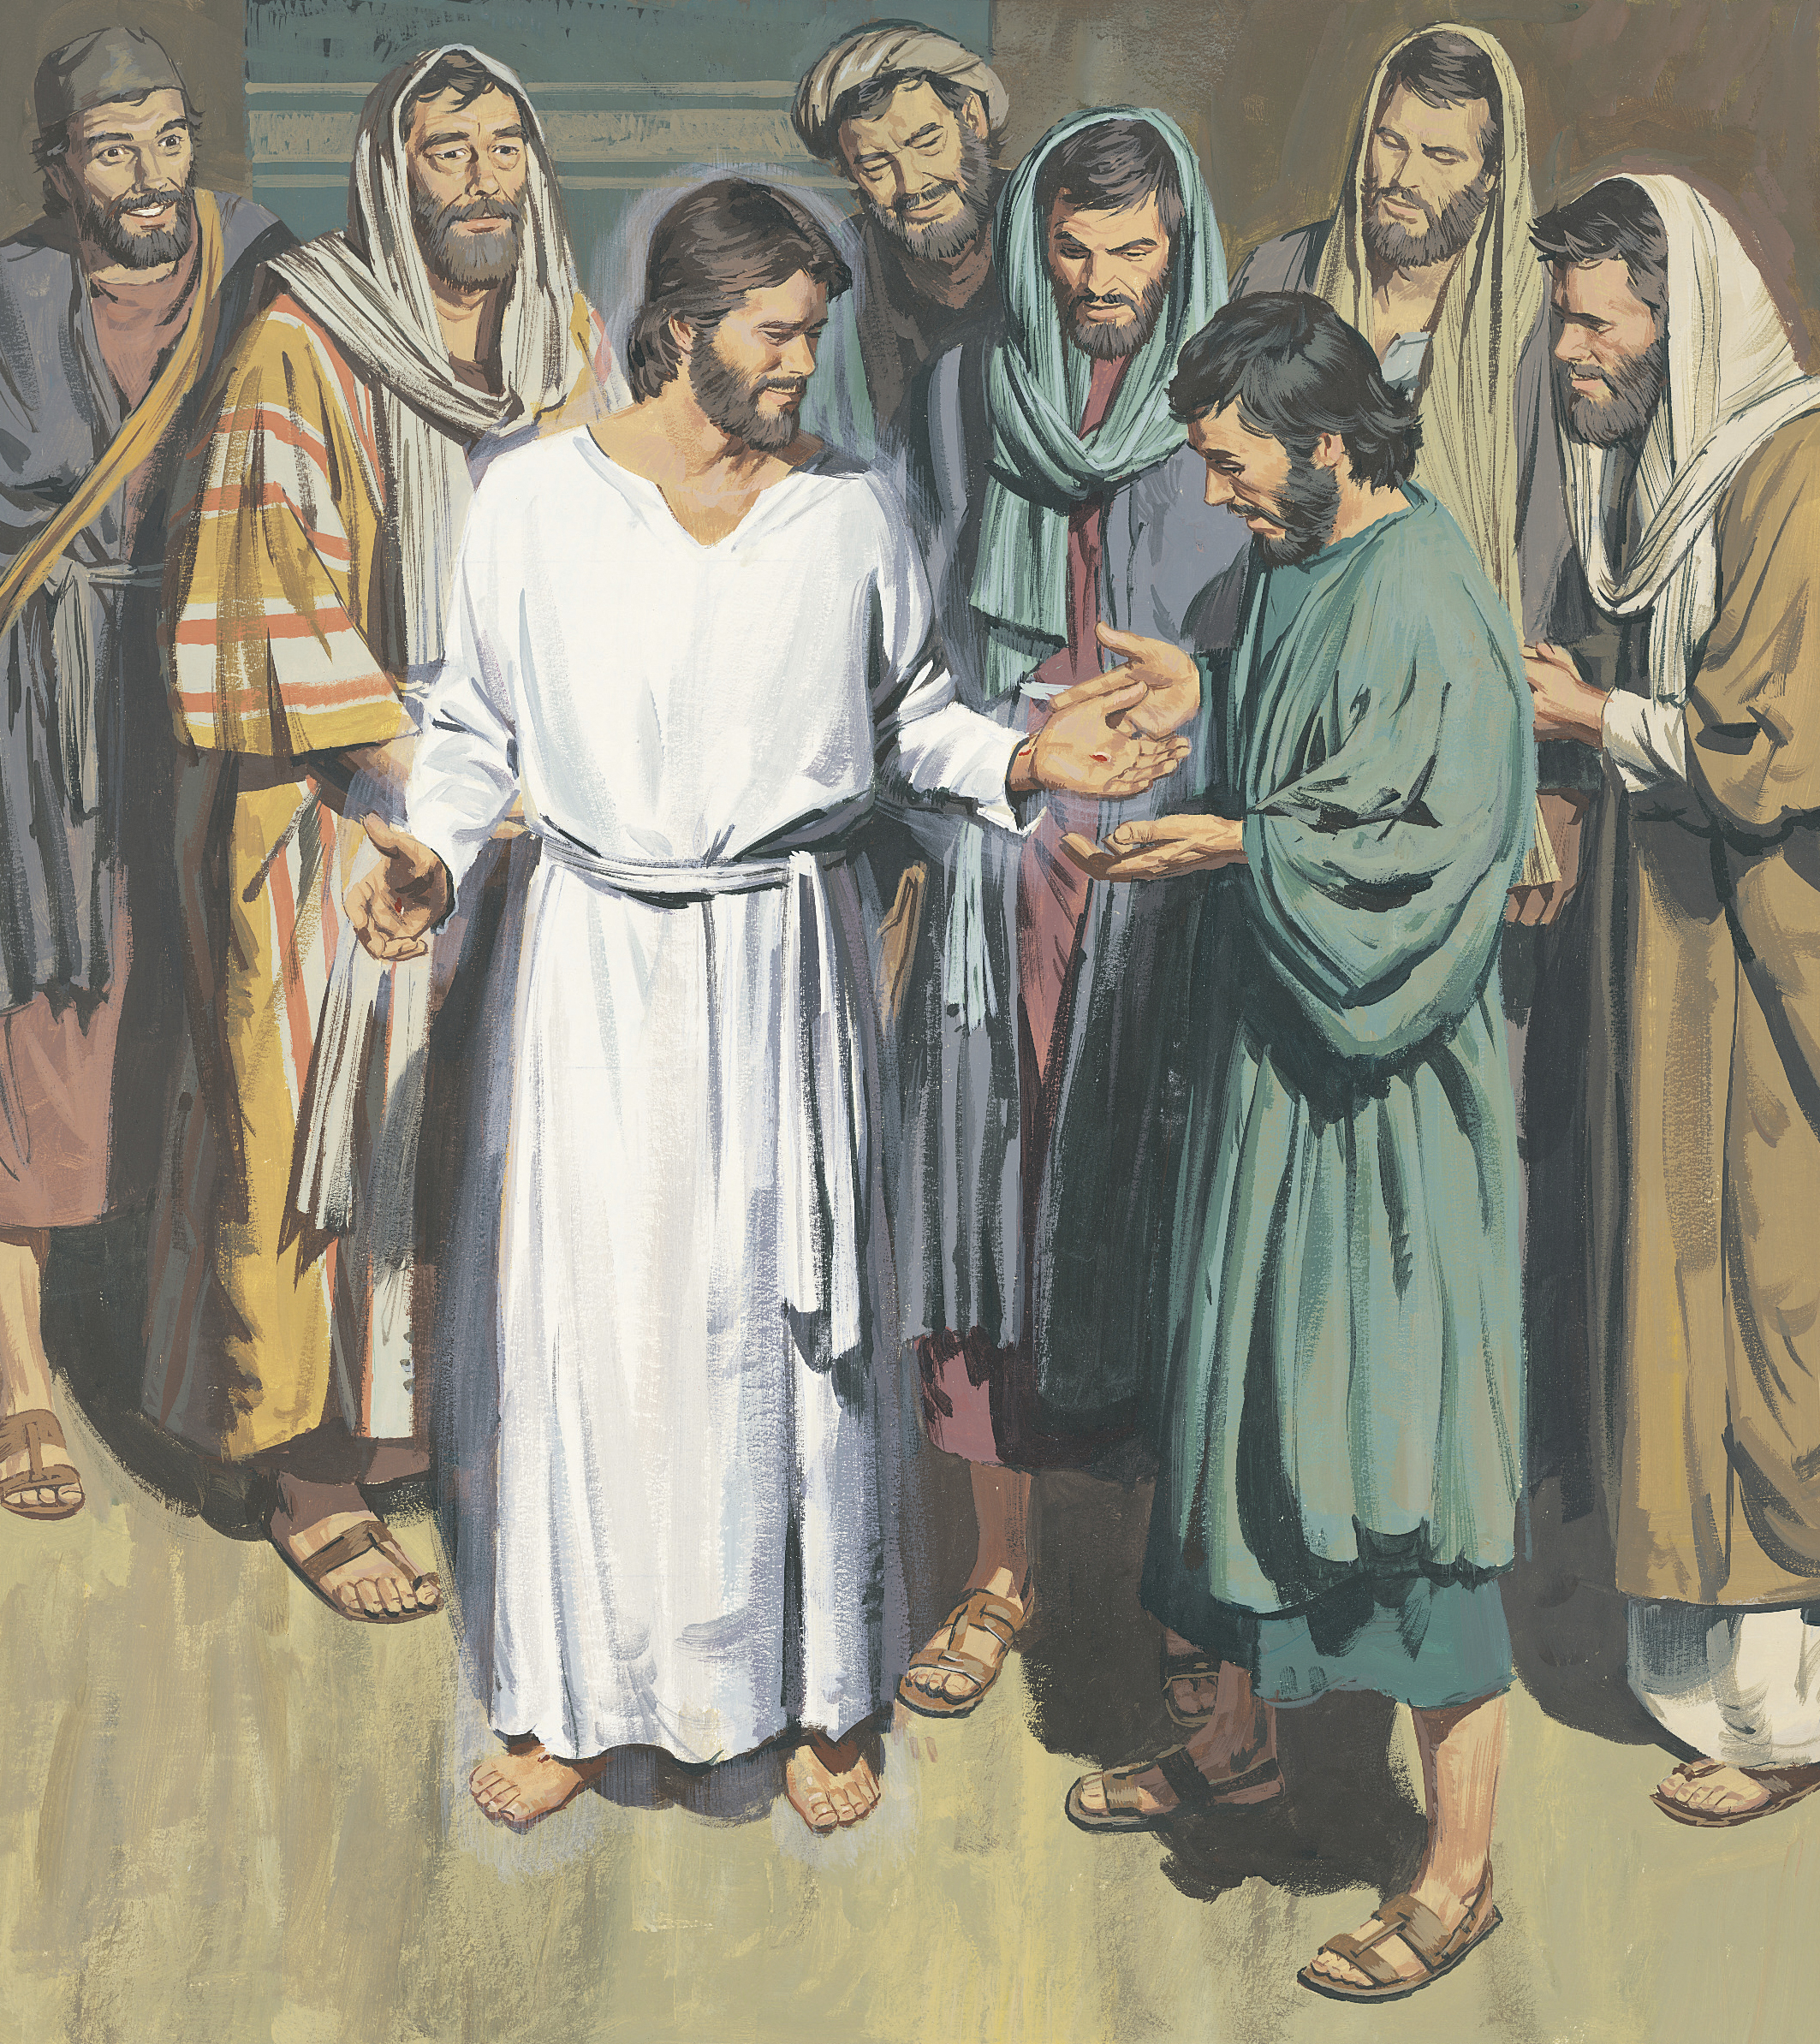 An illustration by Paul Mann depicting the resurrected Christ appearing to His Apostles.